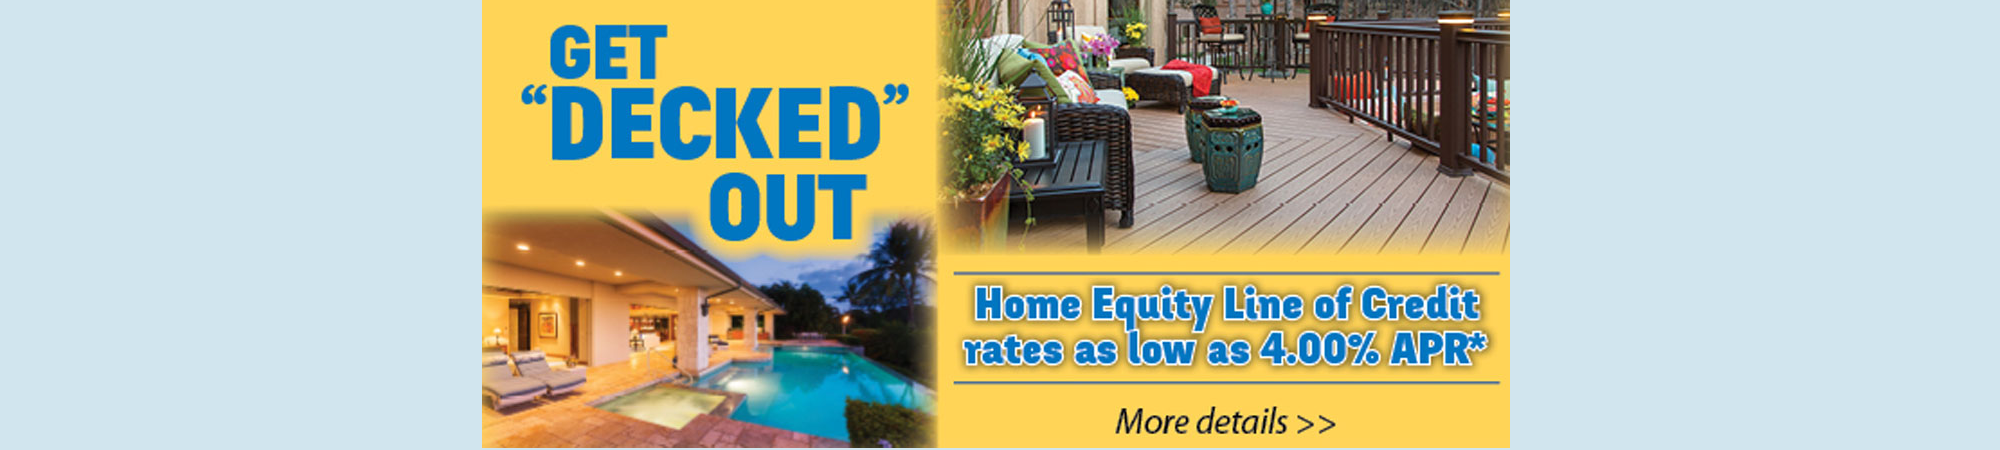 Get deckd out. Home equity loans as low as 4% APR.